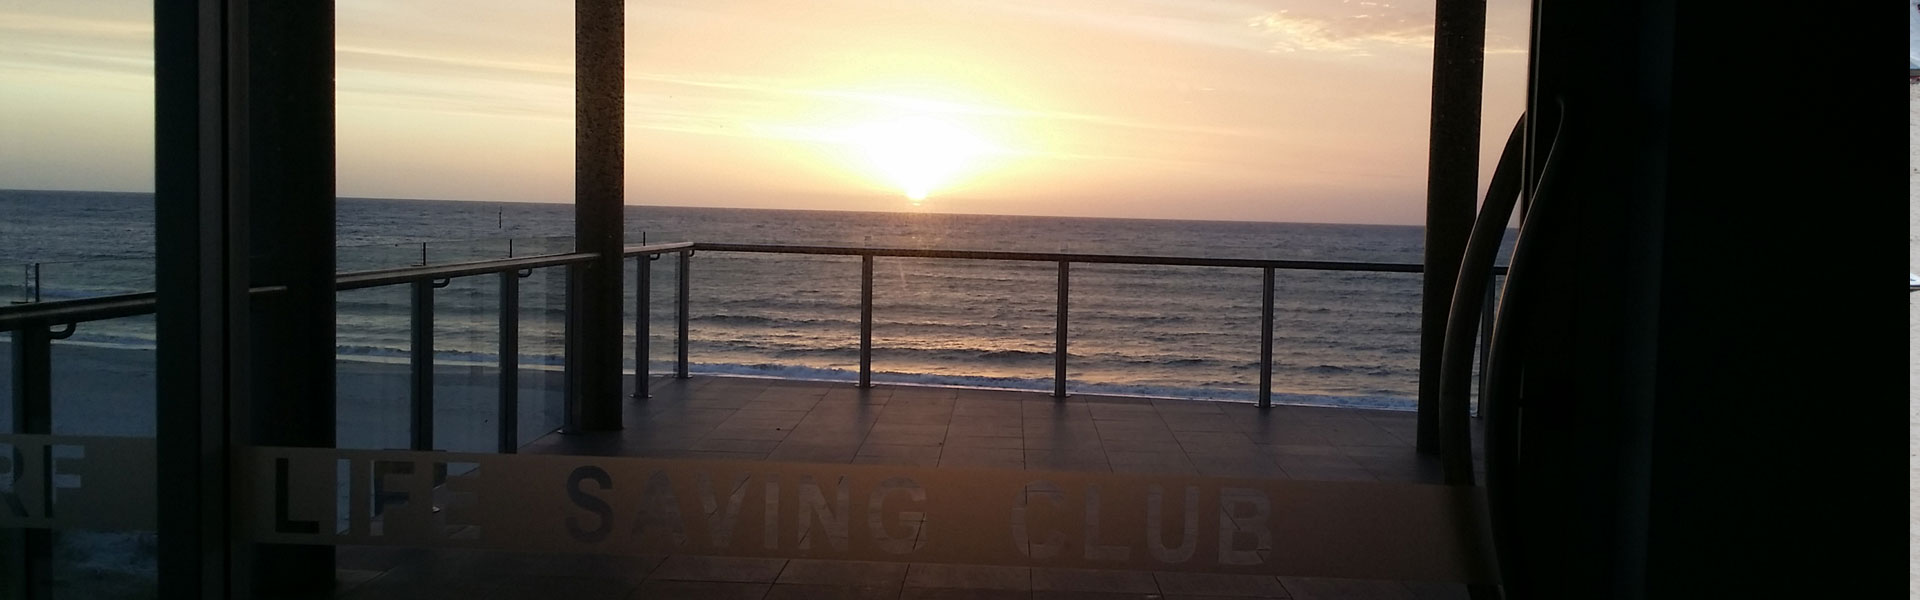 seacliff-slsc-functions-sunset